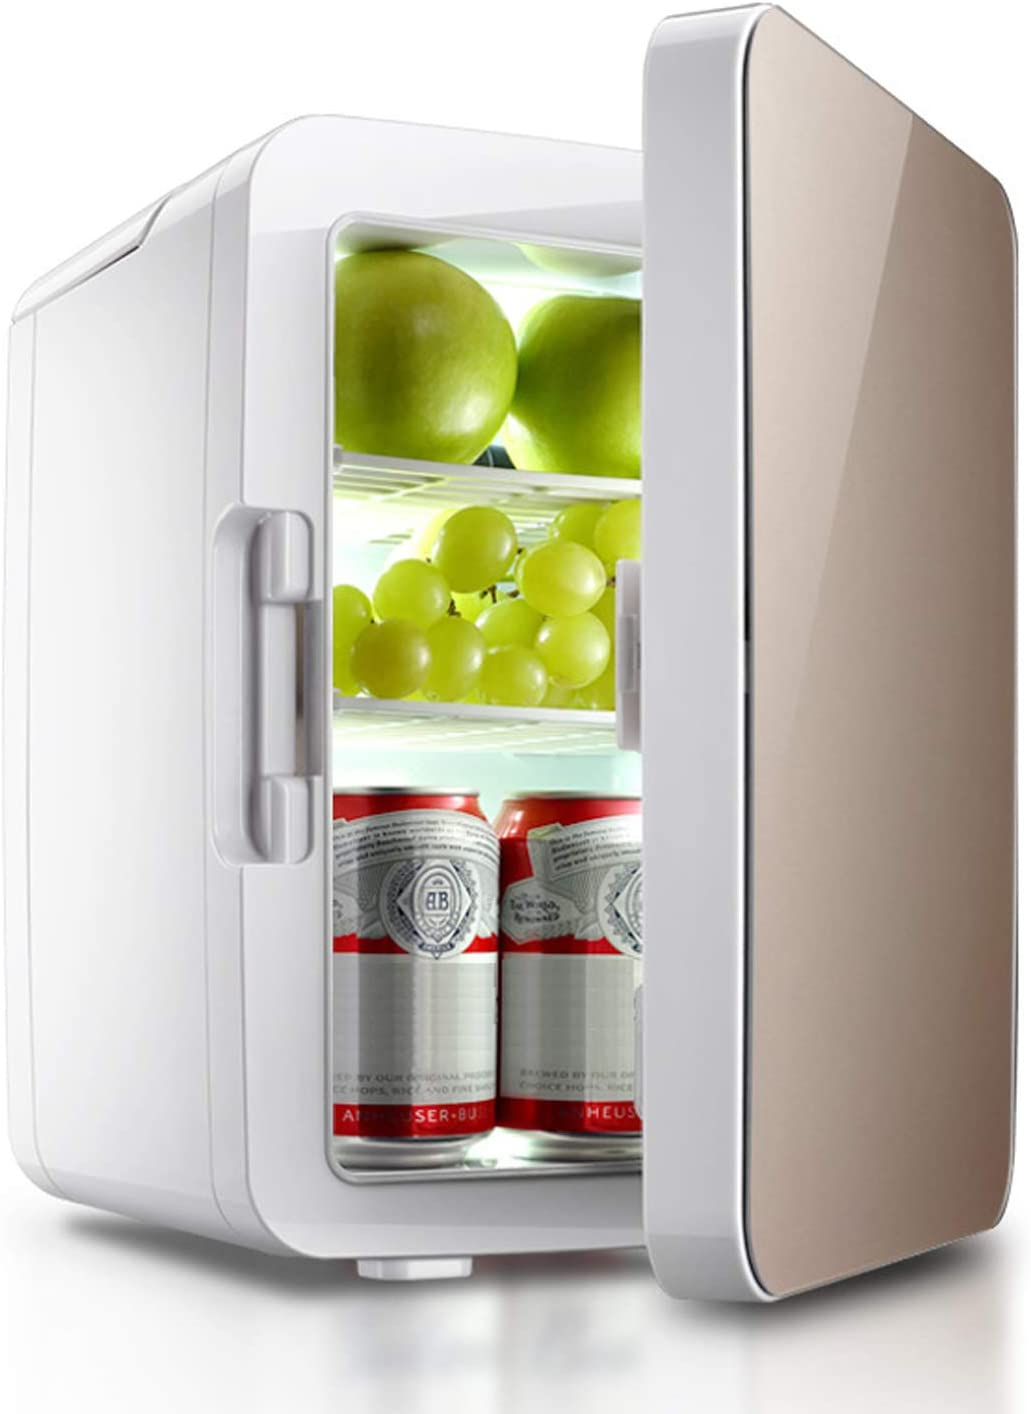 Mirzebo Mini Fridge Electric Cooler & Warmer (10 Liter / 12 Can) Portable Car Refrigerator 10L with AC/DC Adapter for Road Trips, Travel, Picnic, Camping, Beach Trips, Homes, Offices, and Dorms